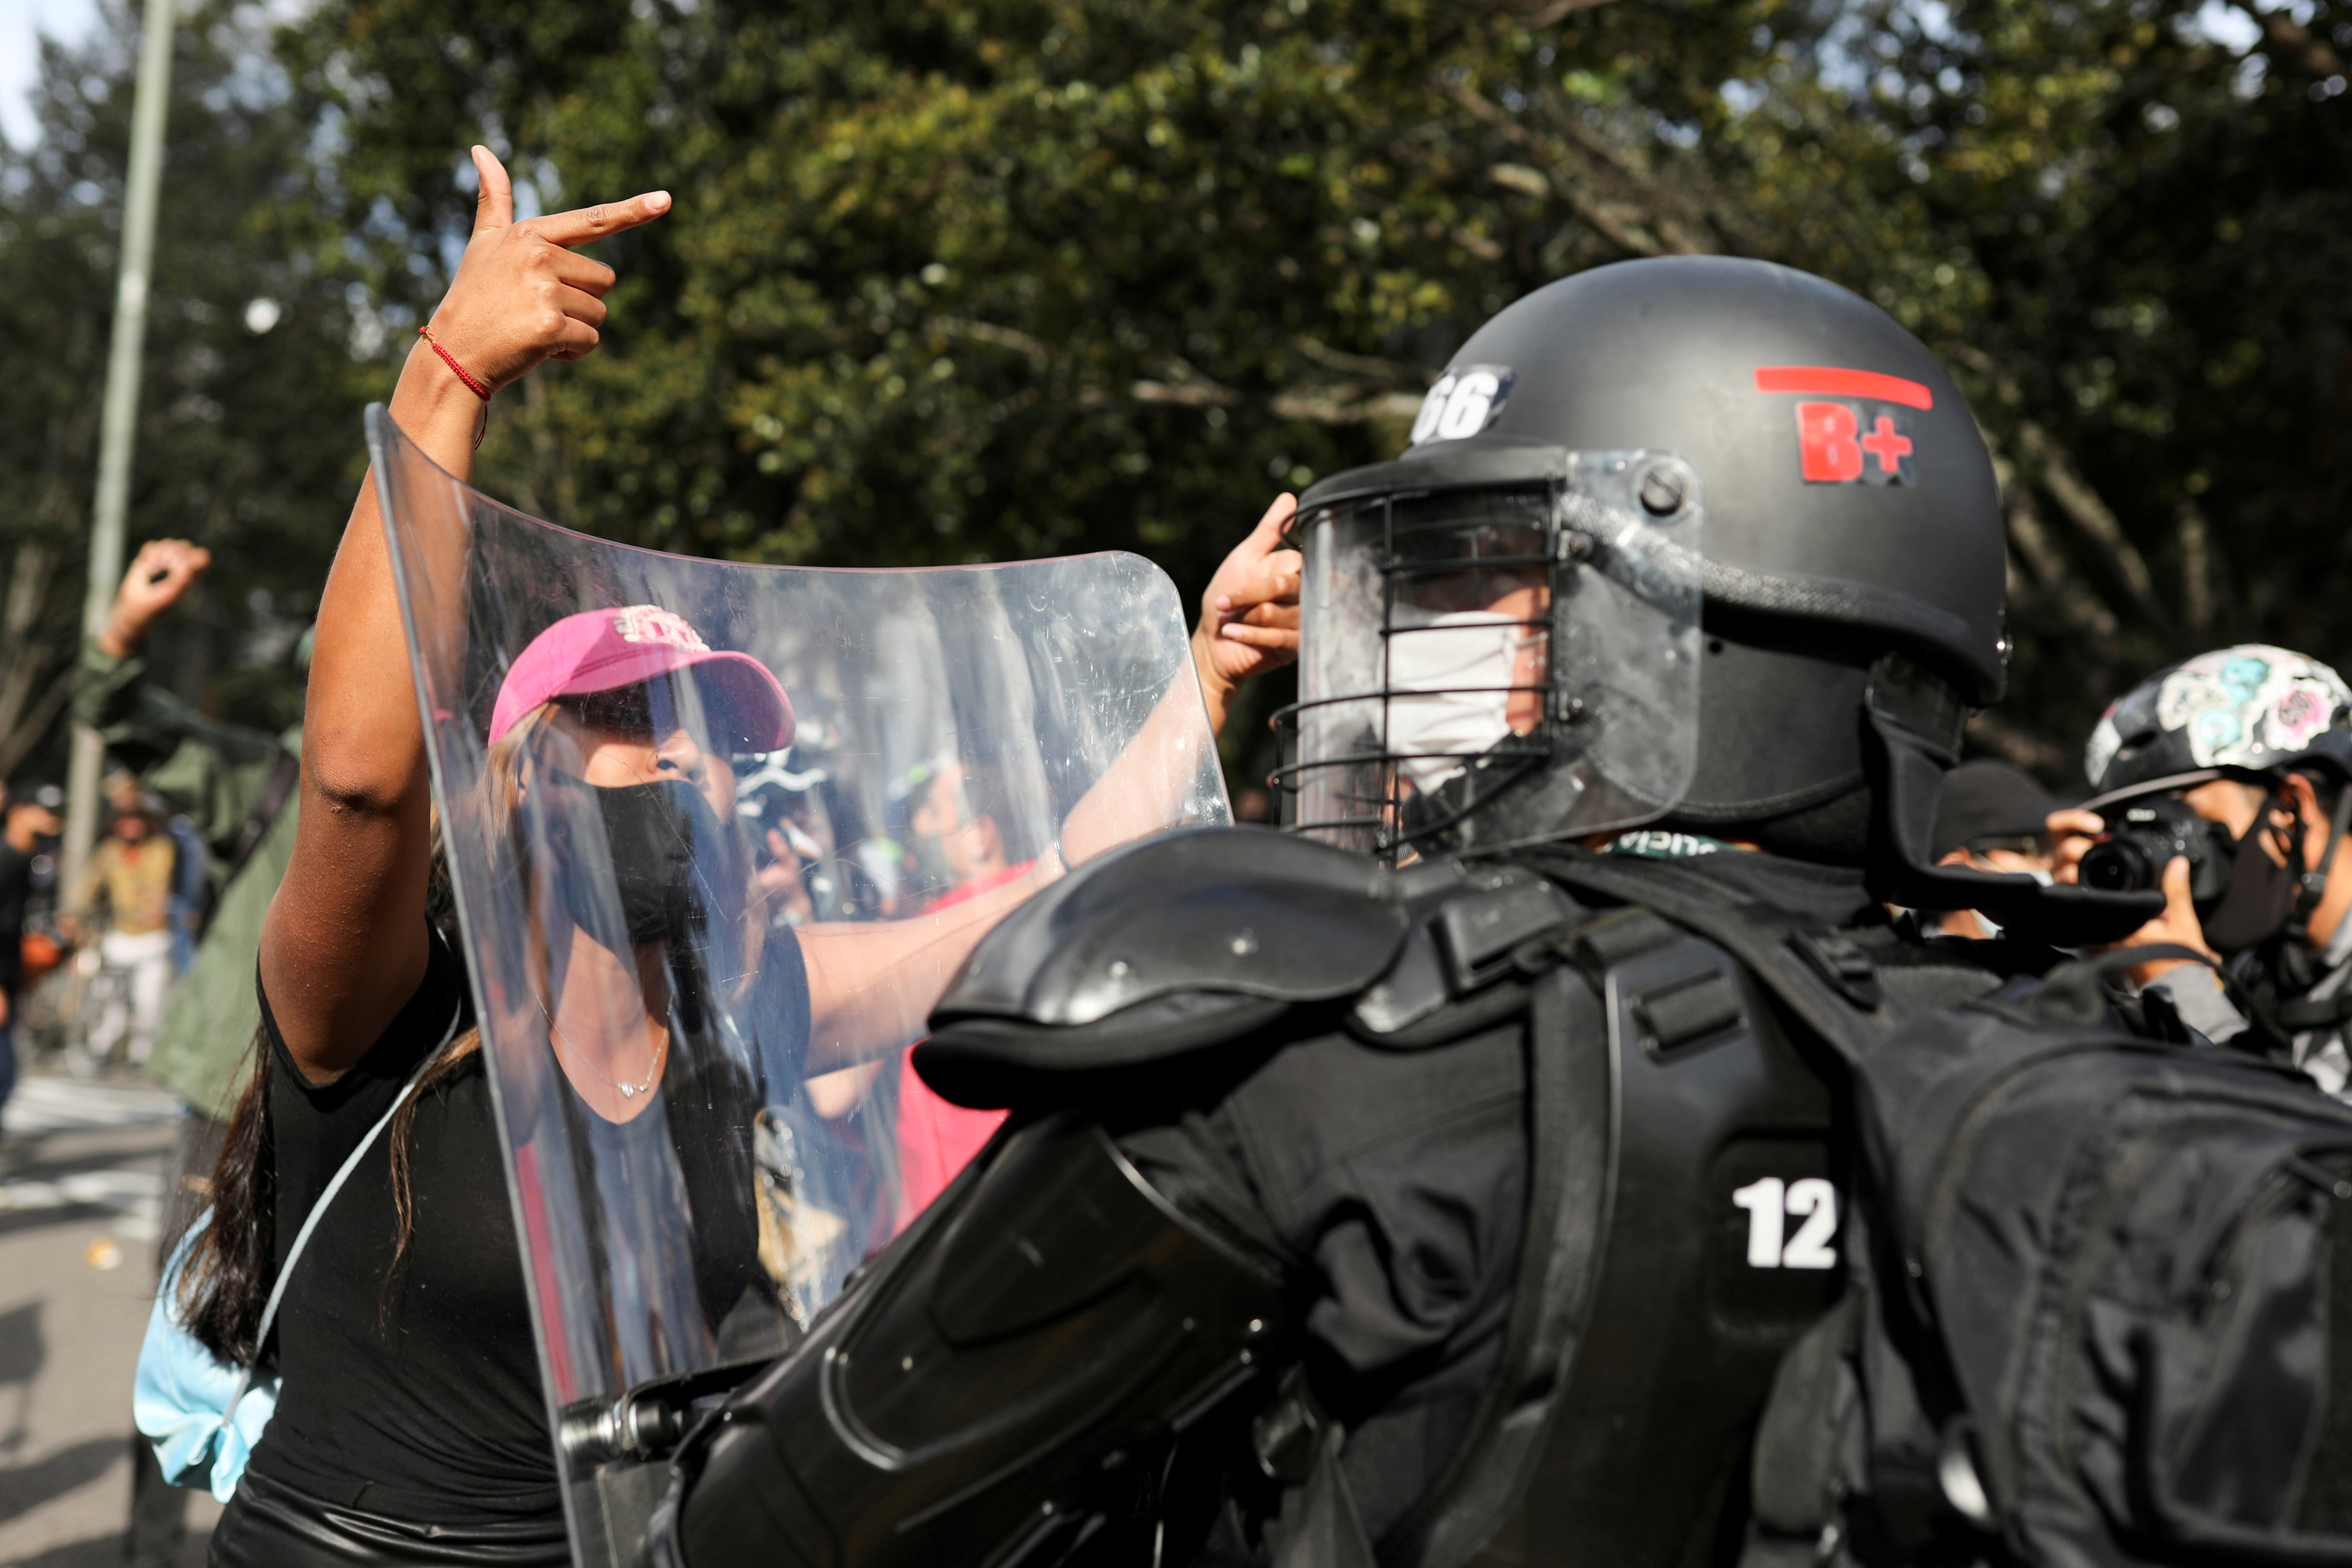 A demonstrator argues with a member of security forces as she takes part in a protest during a national strike, in Bogota, Colombia, November 21, 2020. REUTERS/Luisa Gonzalez/File Photo